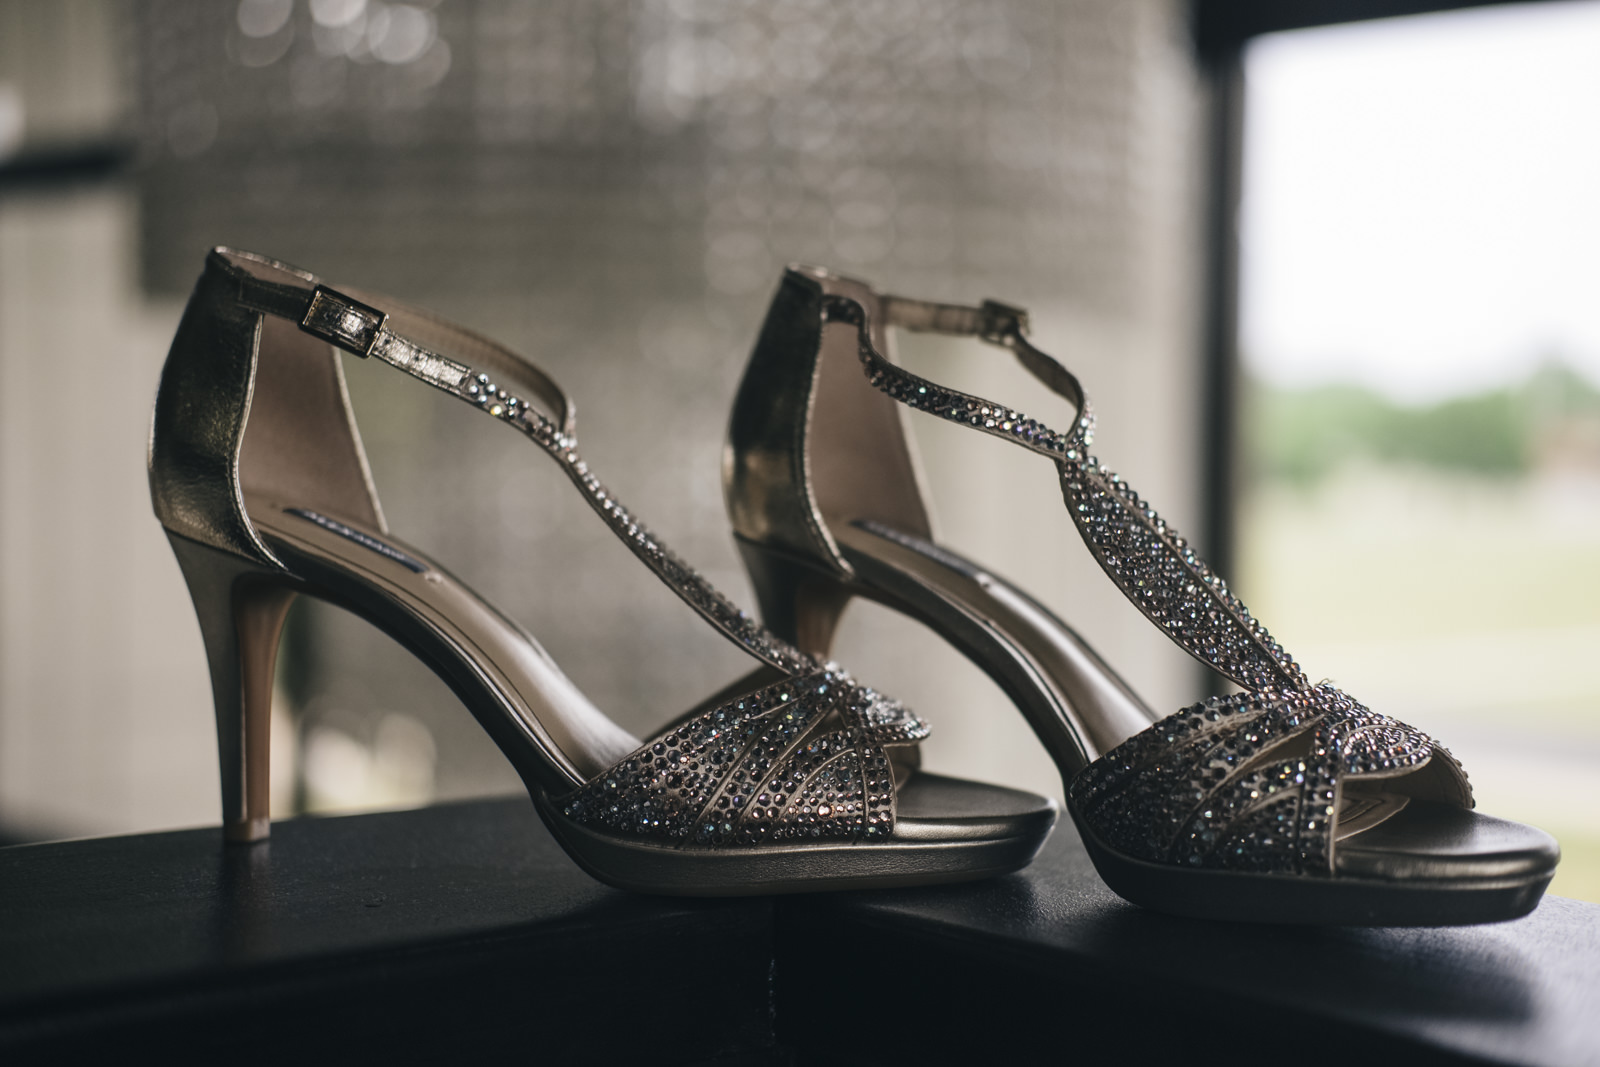 The bride's sparkly heeled shoes for her wedding day.